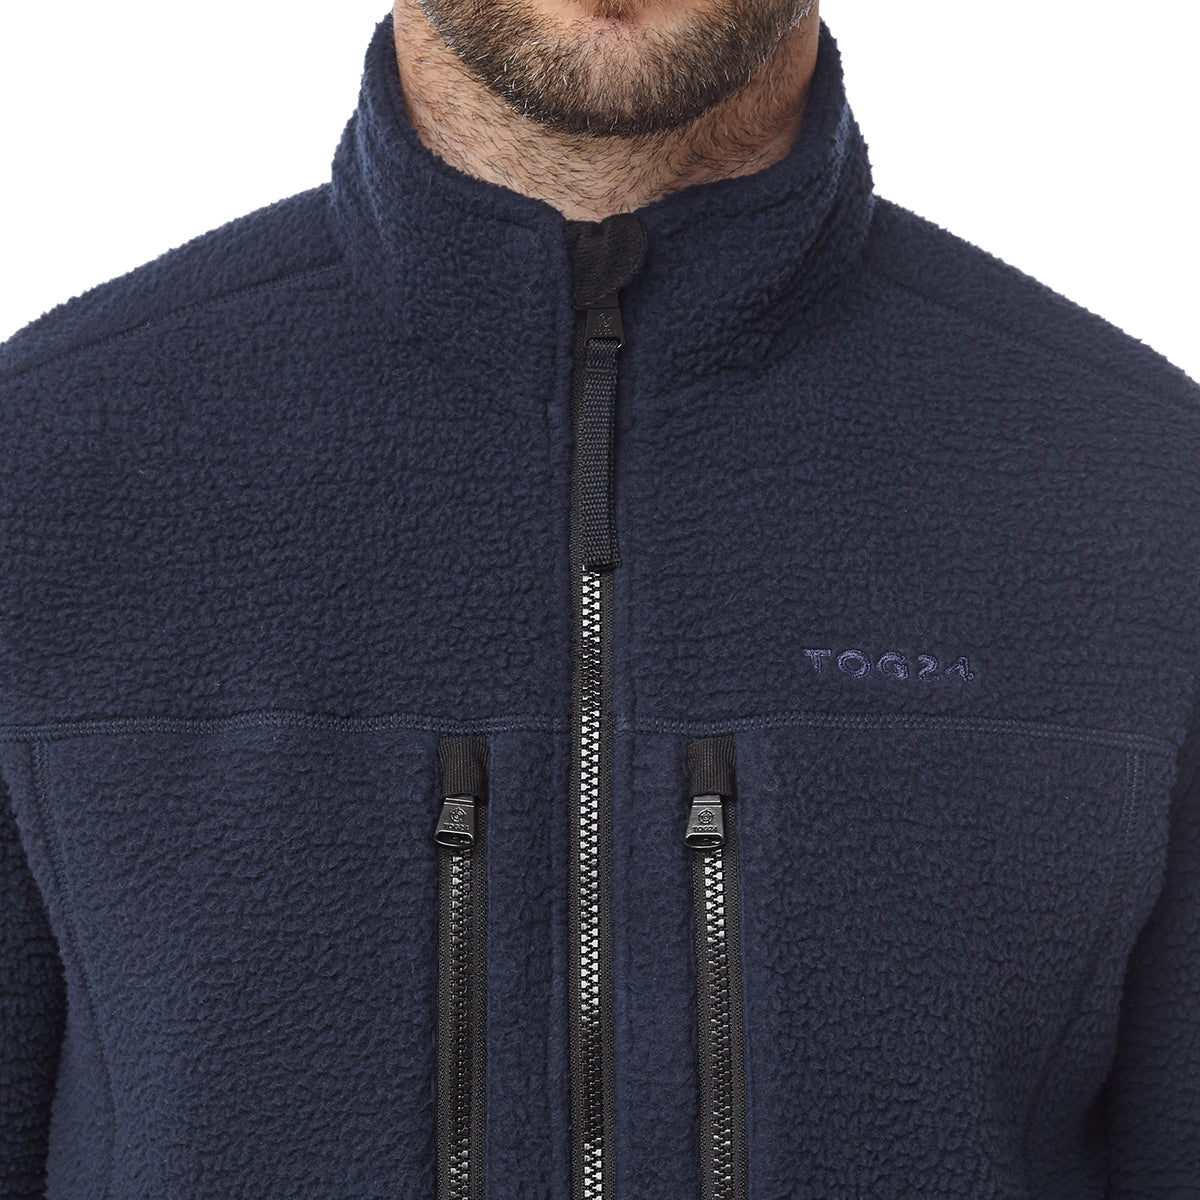 Leonard Mens Sherpa Fleece Jacket - Navy image 4